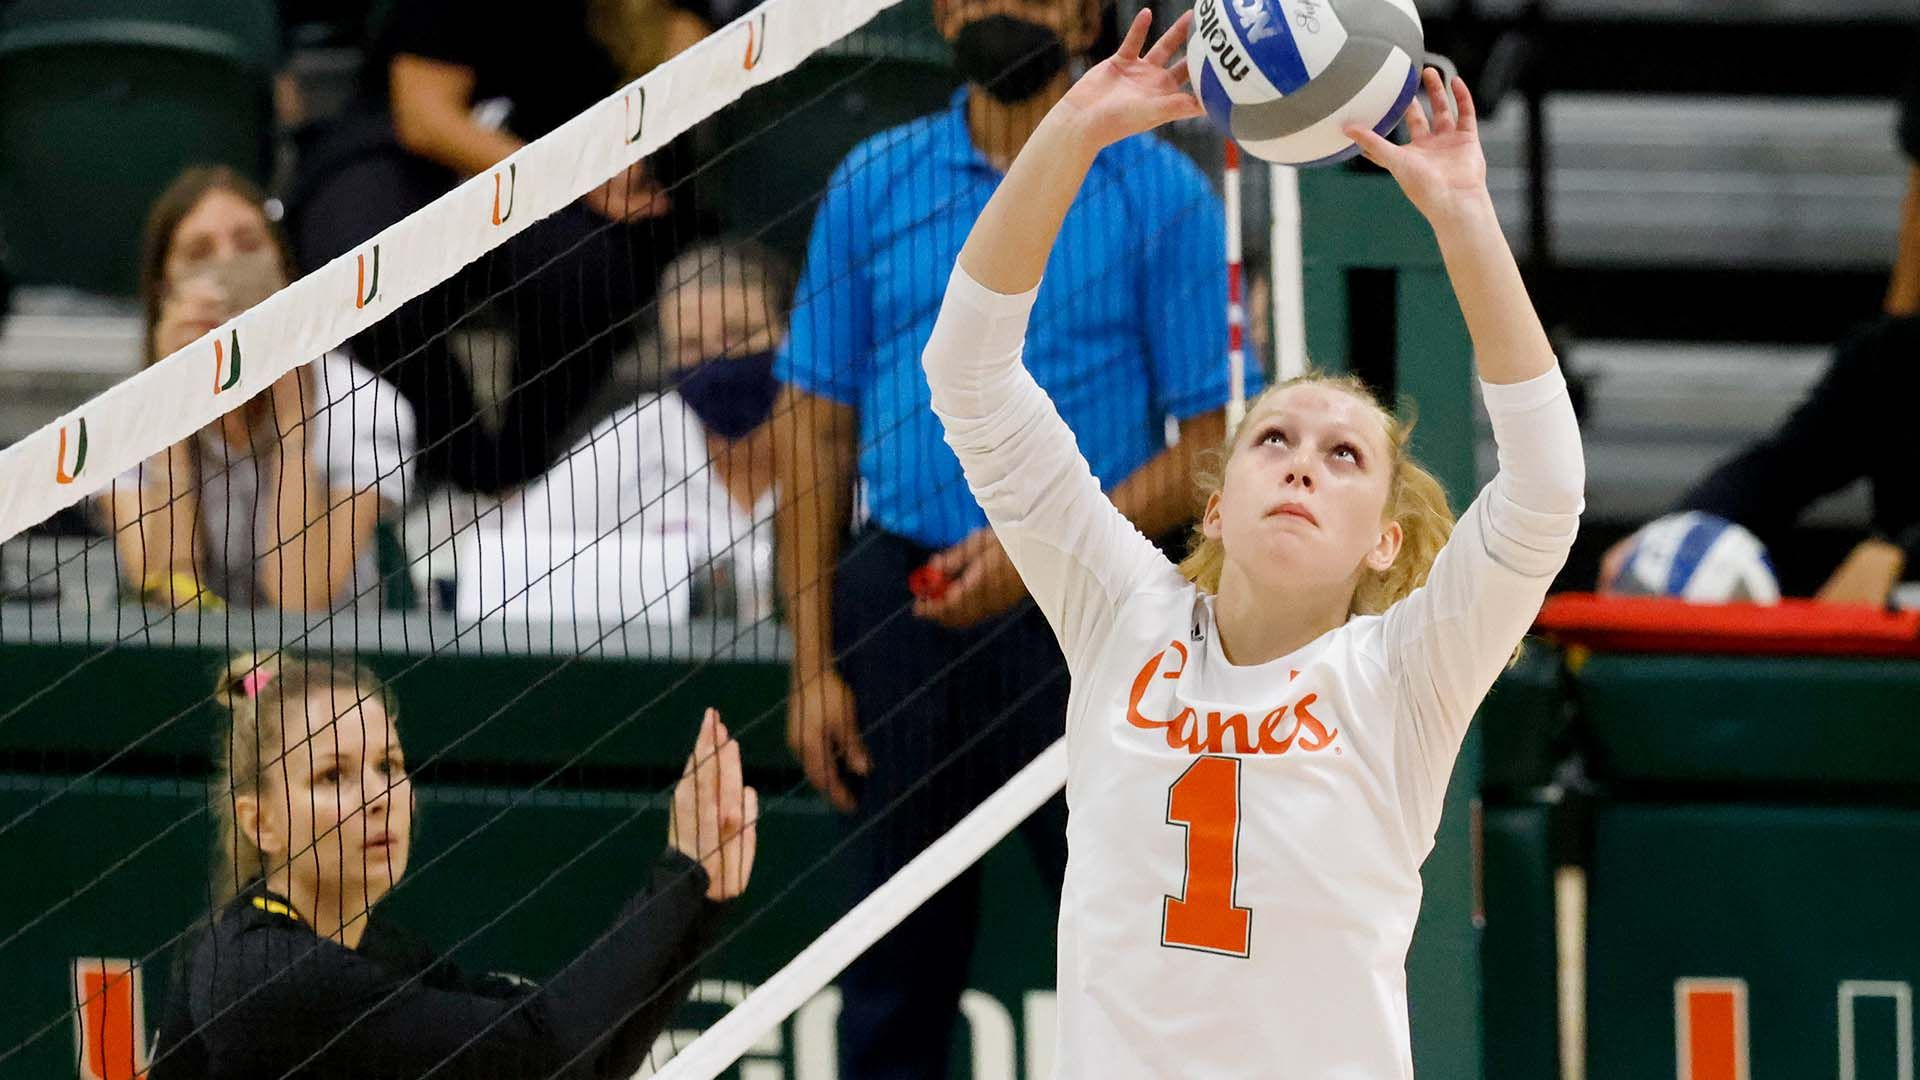 Vach Posts First Career Triple-Double in Game One of Sunshine State Classic